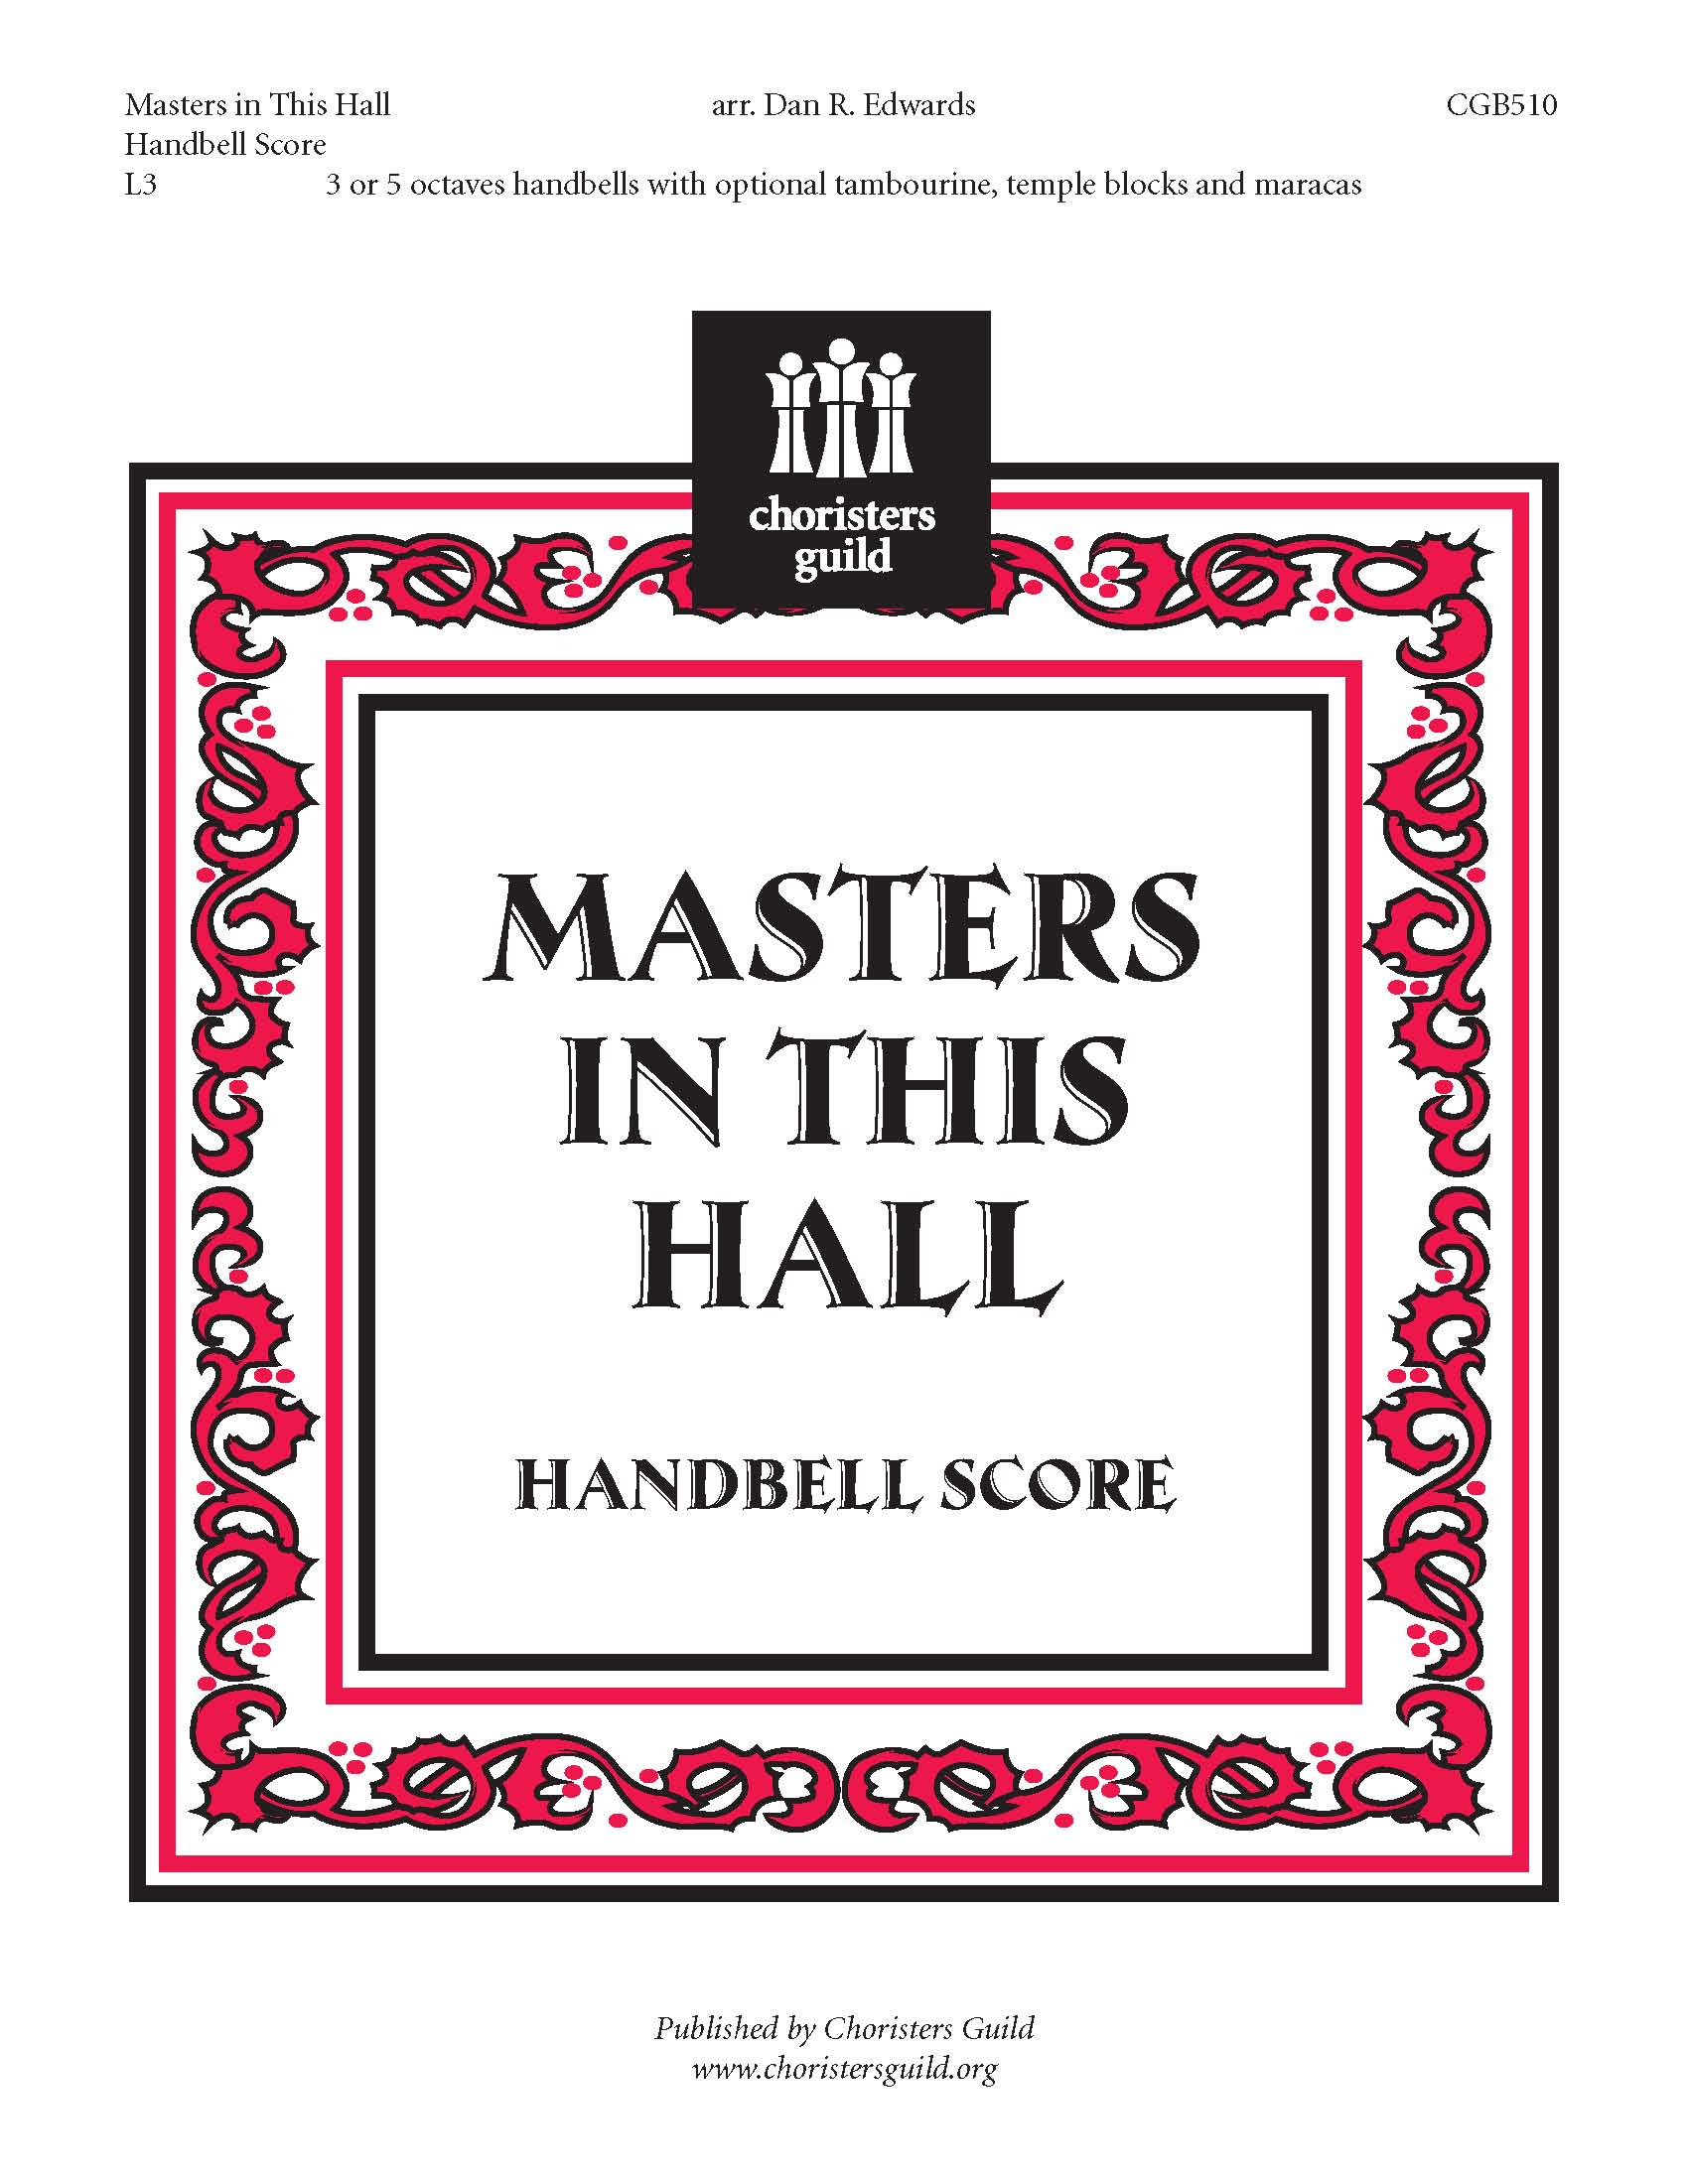 Masters in this Hall (Handbell Score)